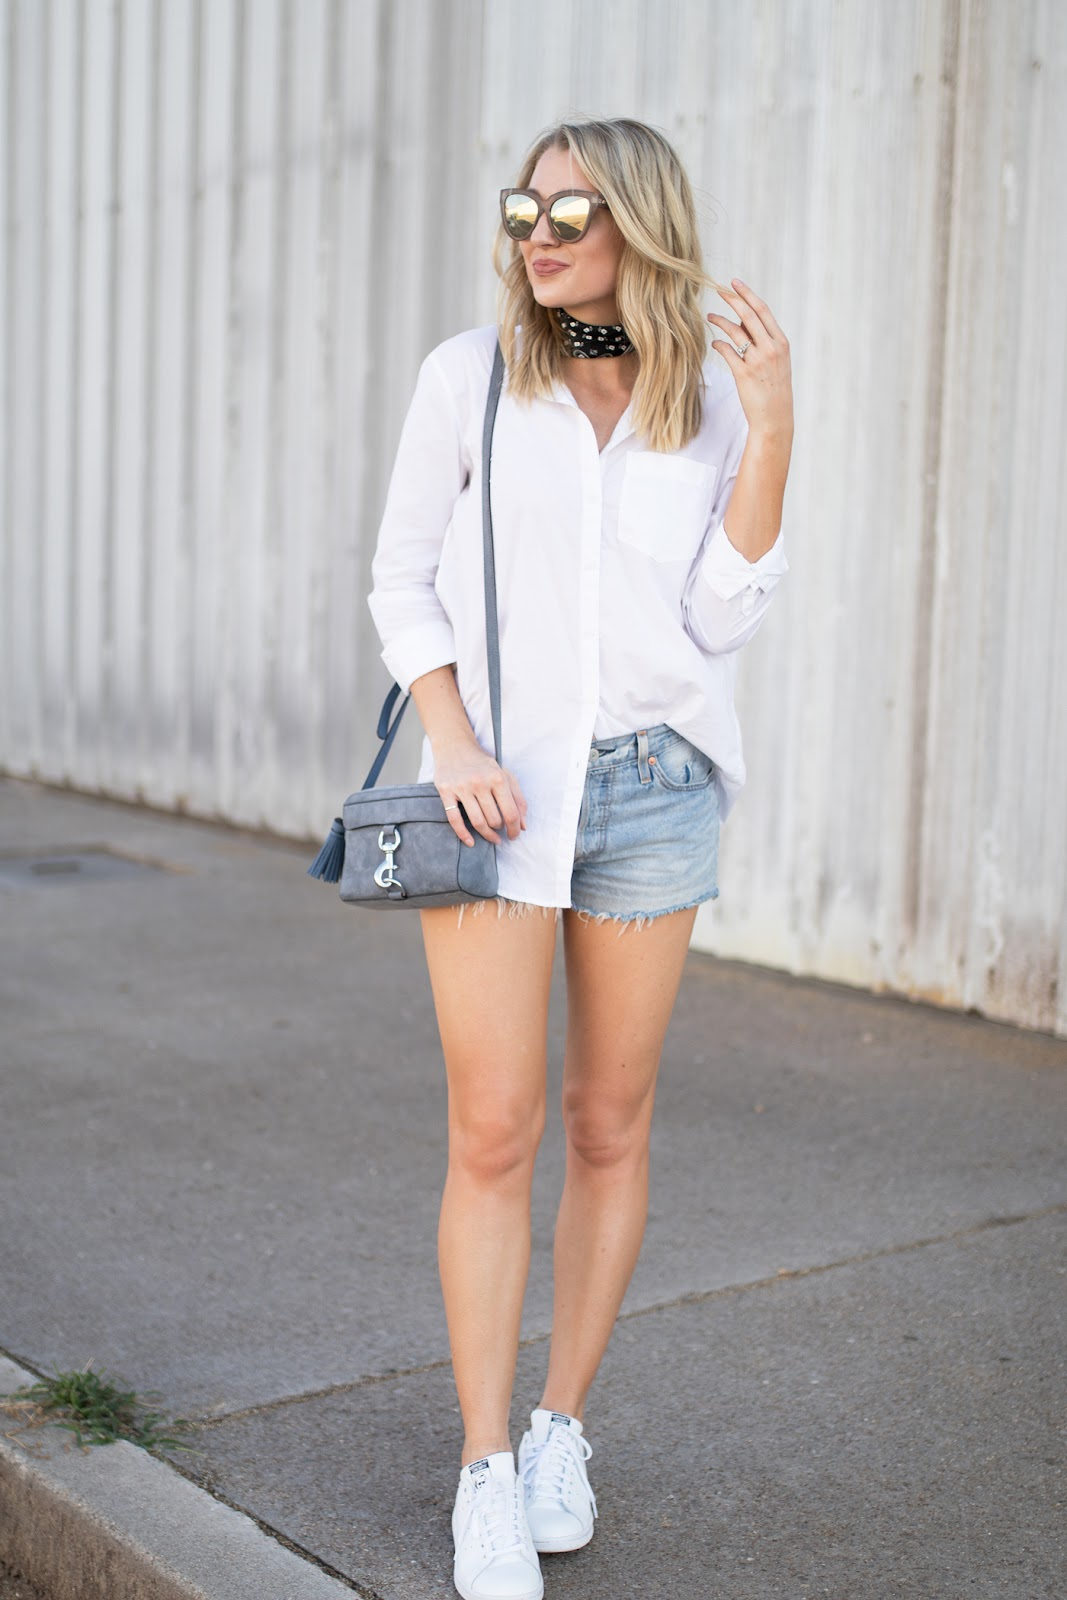 Cute outfit with white sneakers